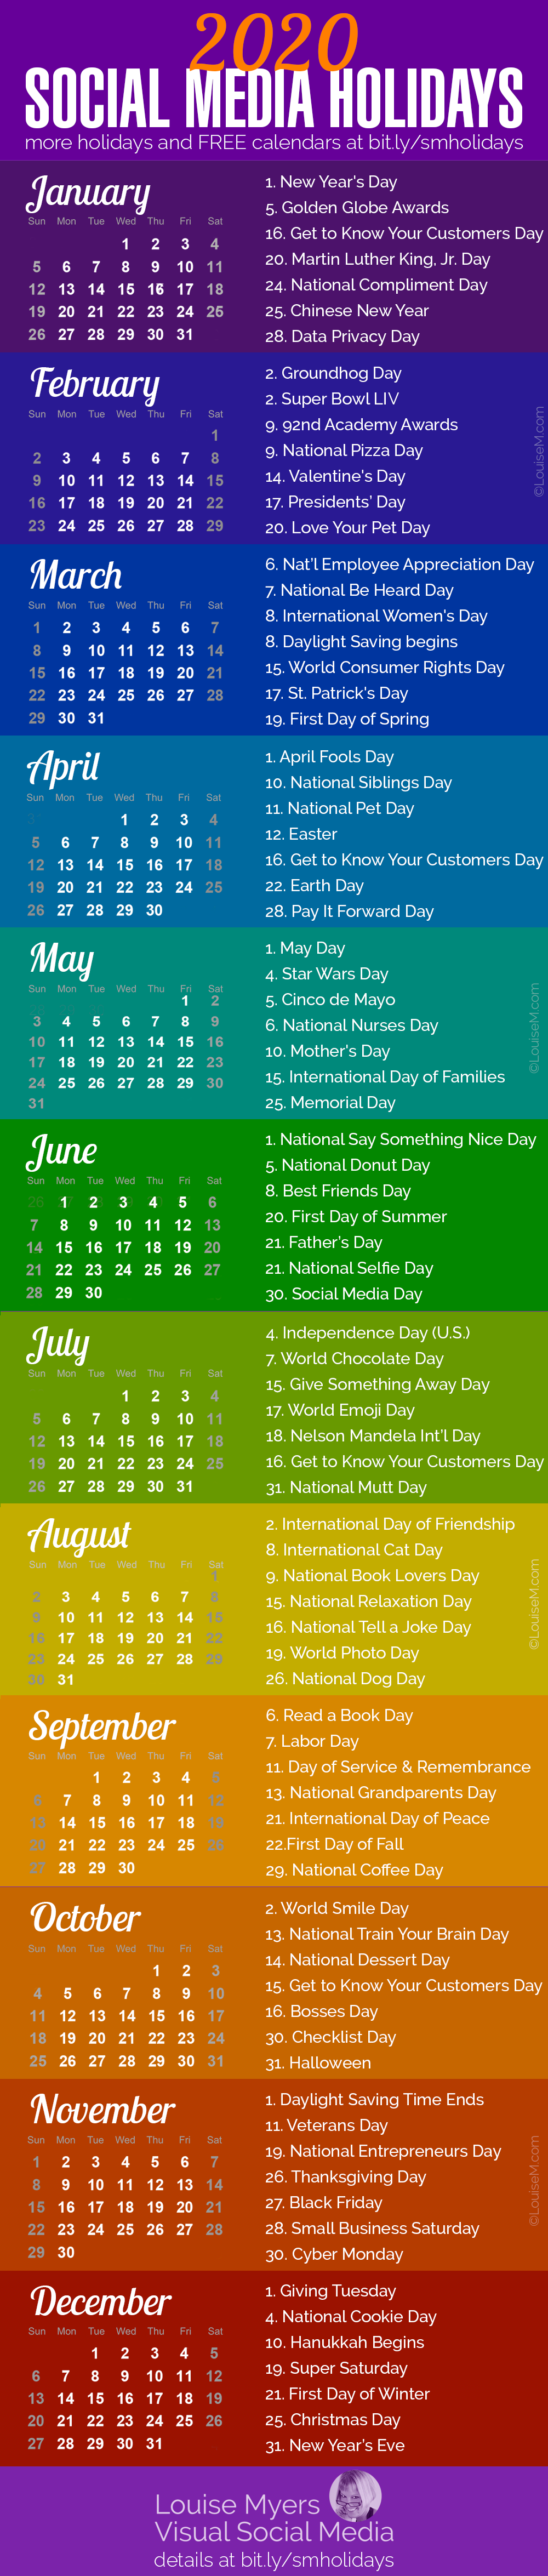 Social media marketing tips: These 2020 holidays are essential for spicing up your content marketing.… | Social media, Social media calendar, Social media marketing